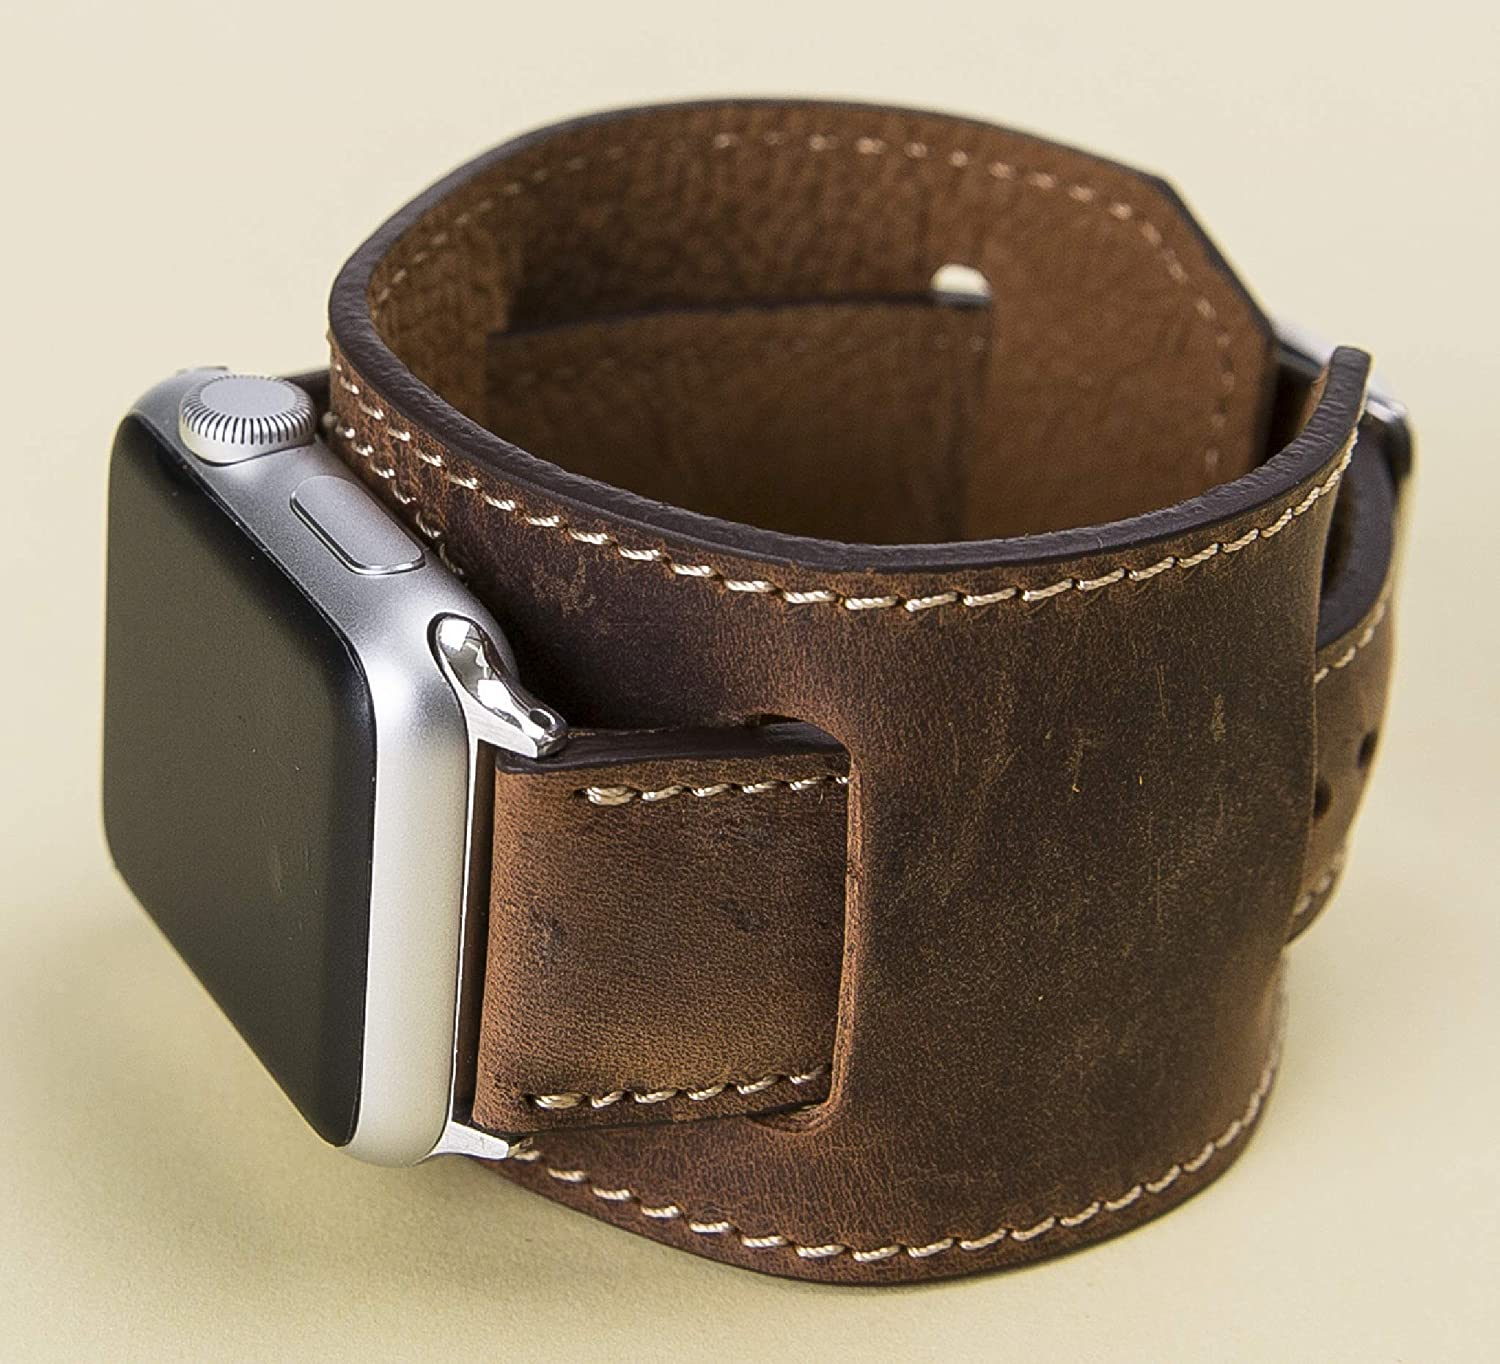 Cuff Apple Watch Band for Series 6-5-4-3-2-1 44mm, 42mm, 40mm, 38mm, Brown iWatch Band, Man or Women, Genuine Leather Strap, High Quality, Engraving Avaliable, HANDMADE, EXPRESS SHIPPING